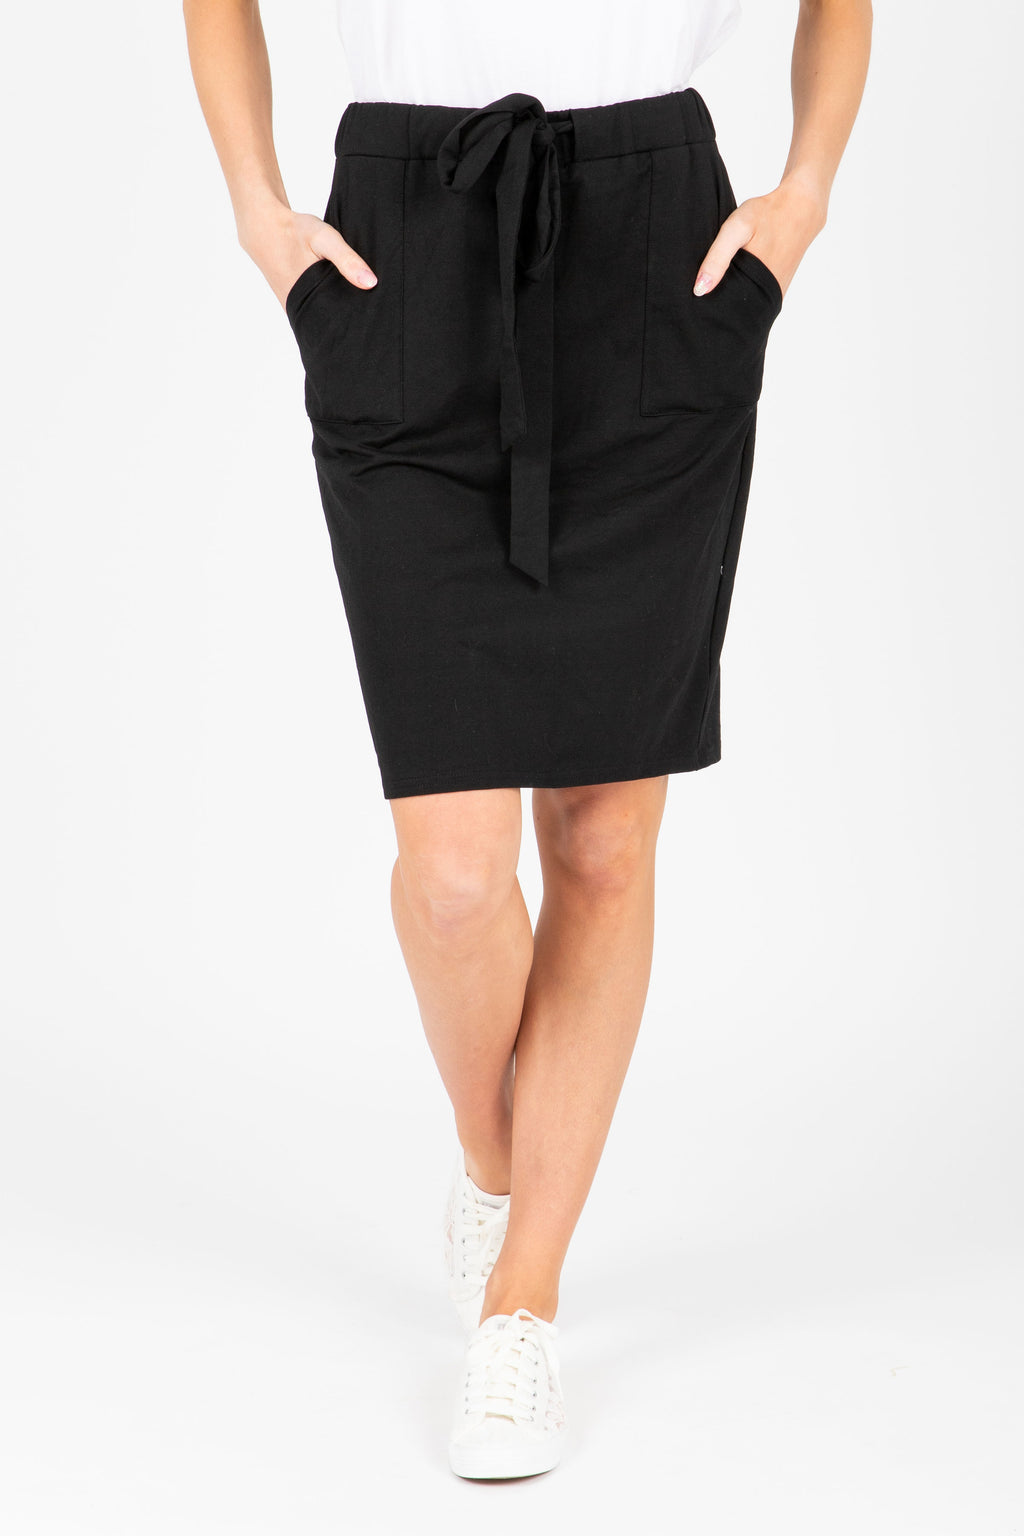 Piper & Scoot: The Mimi Cinch Casual Skirt in Black, studio shoot; front view